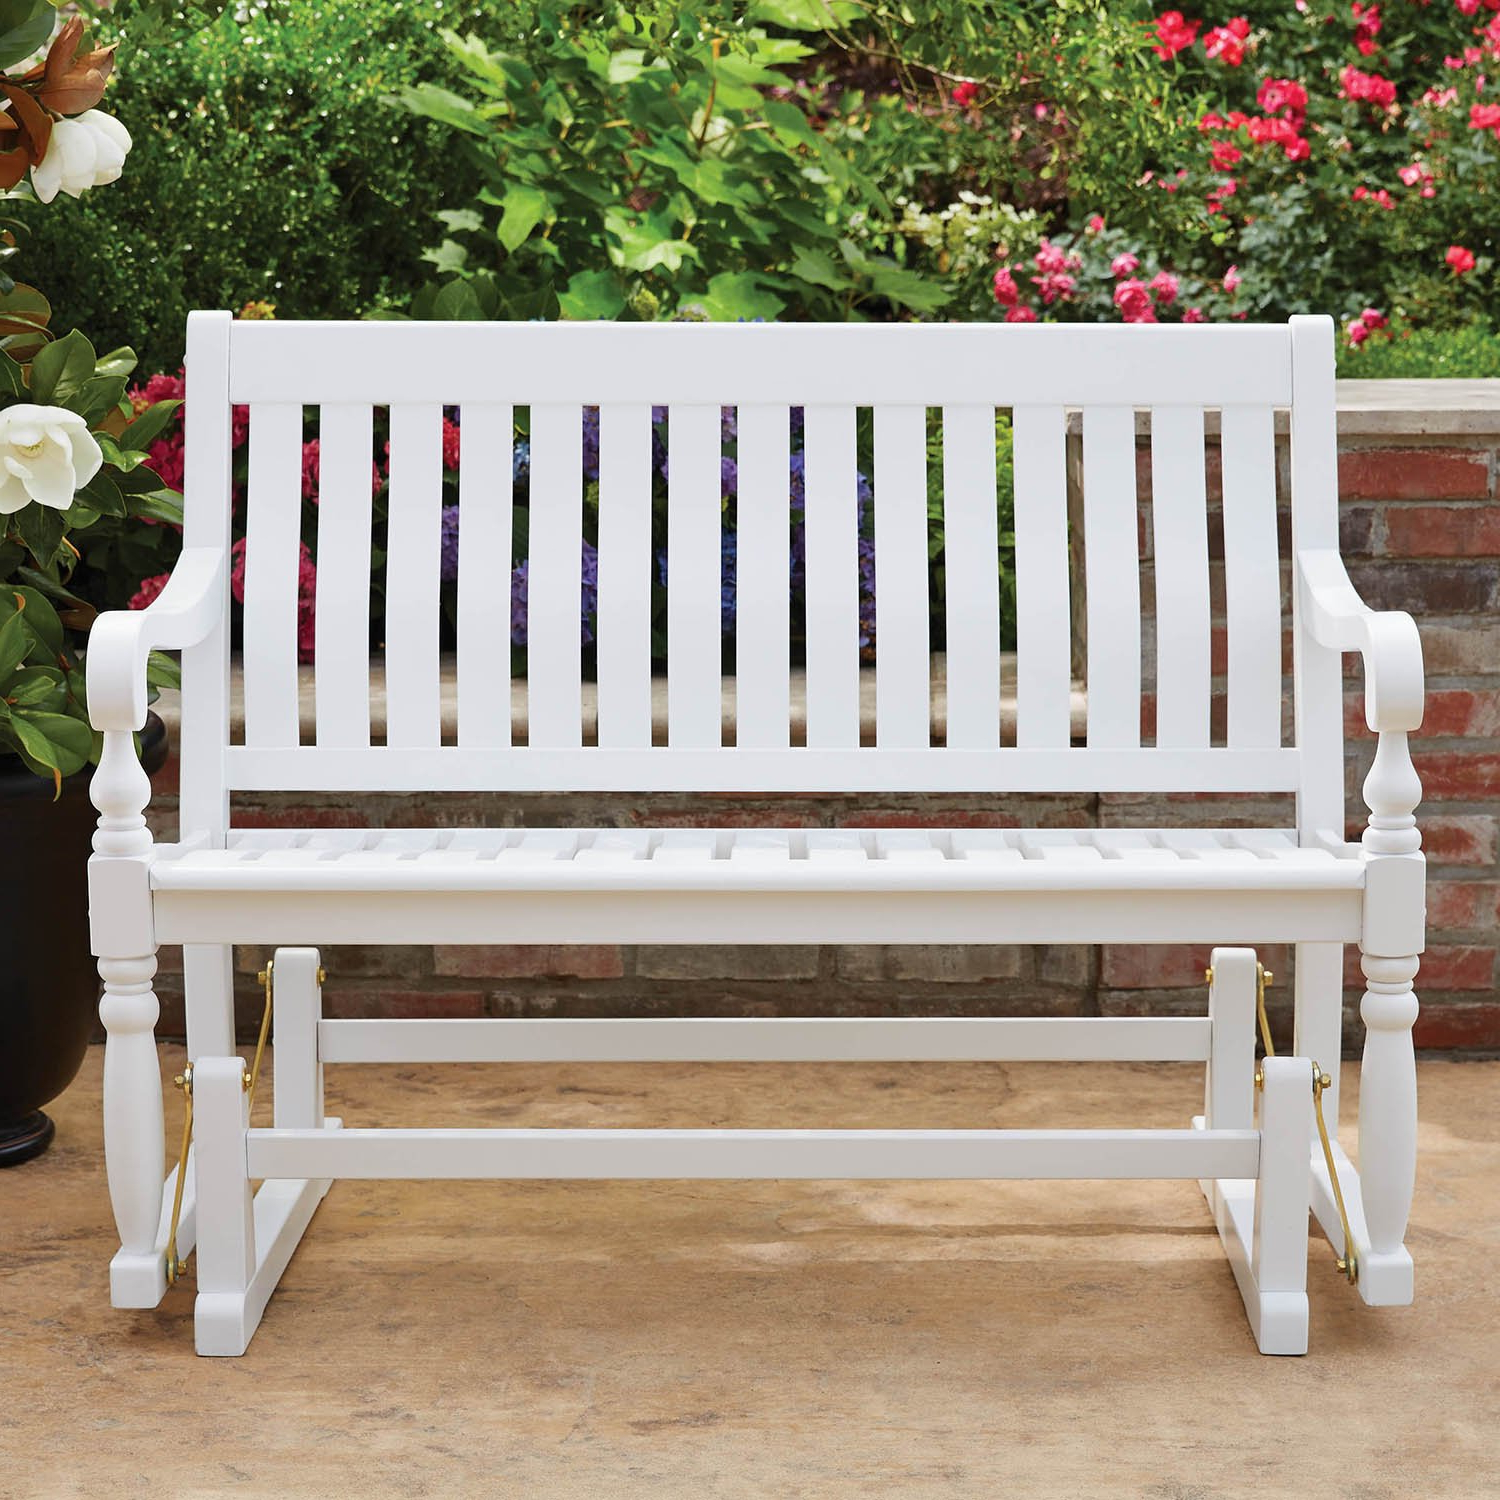 Trendy Hardwood Porch Glider Benches Regarding Details About Painted Wood Glider Bench (White) Country Farmhouse Shabby  Chic 4 Feet Long Ft (View 20 of 30)